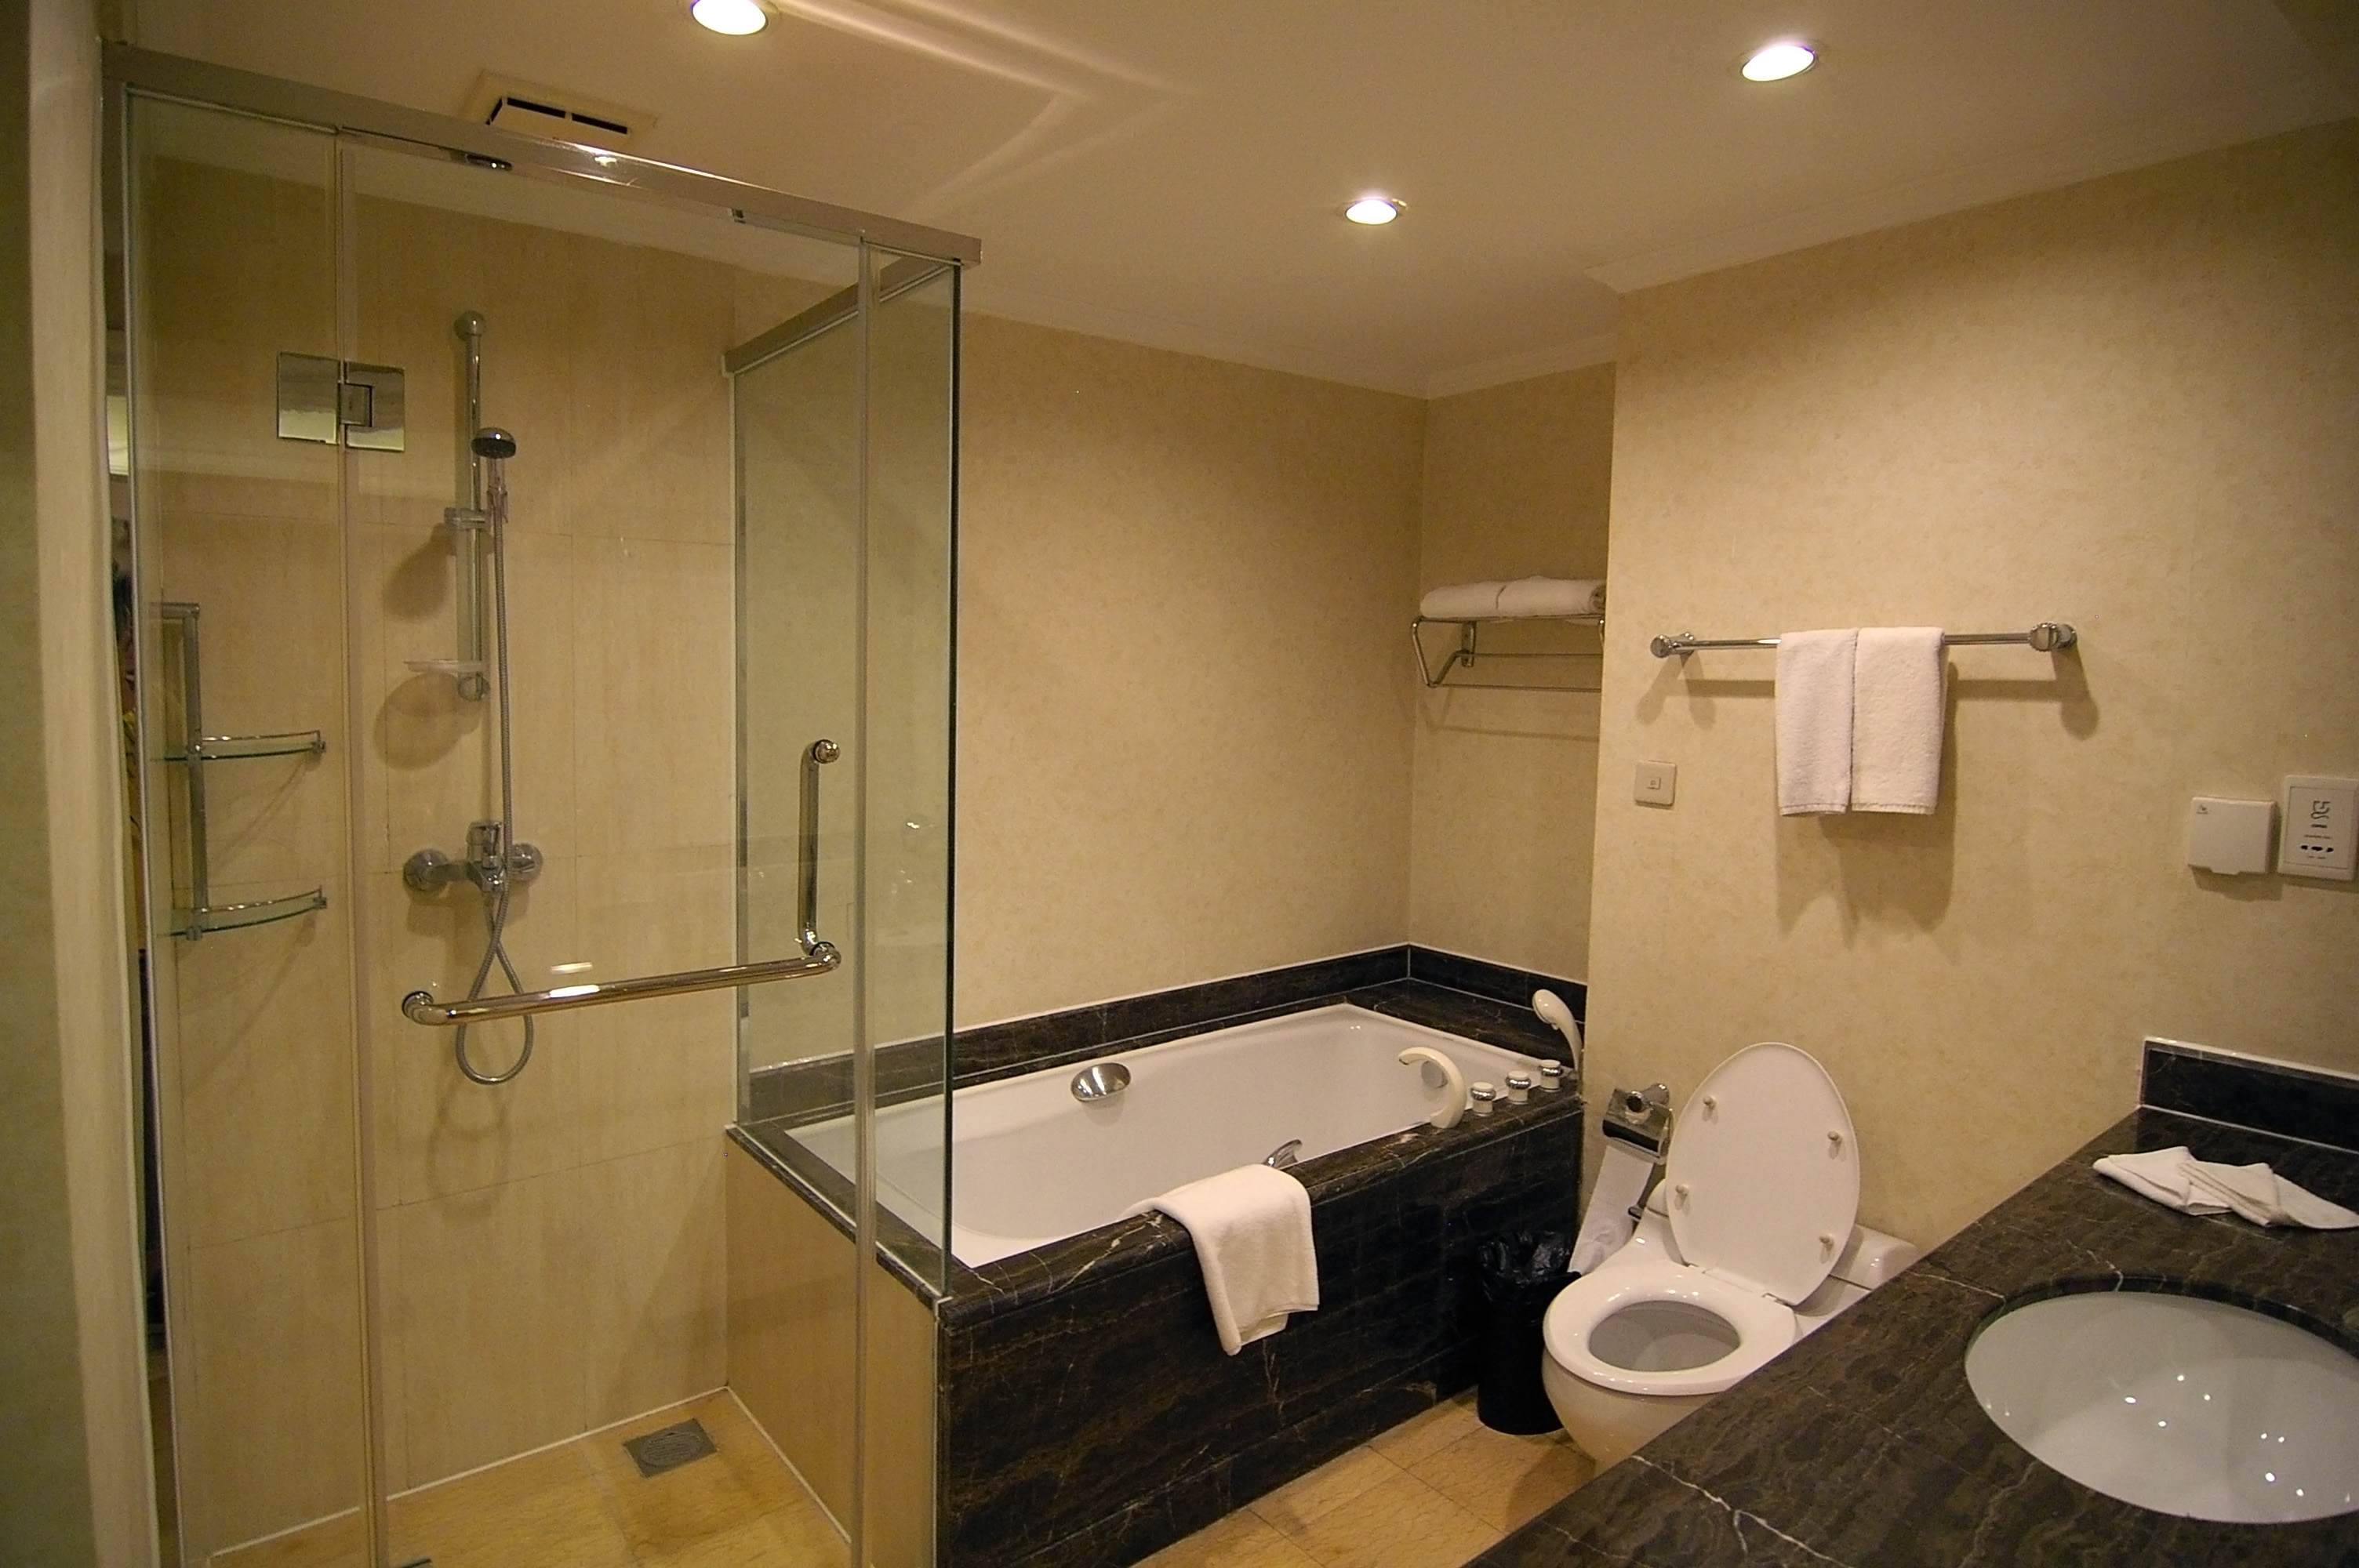 Free Stock Photo 2473 bathroom suite | freeimageslive